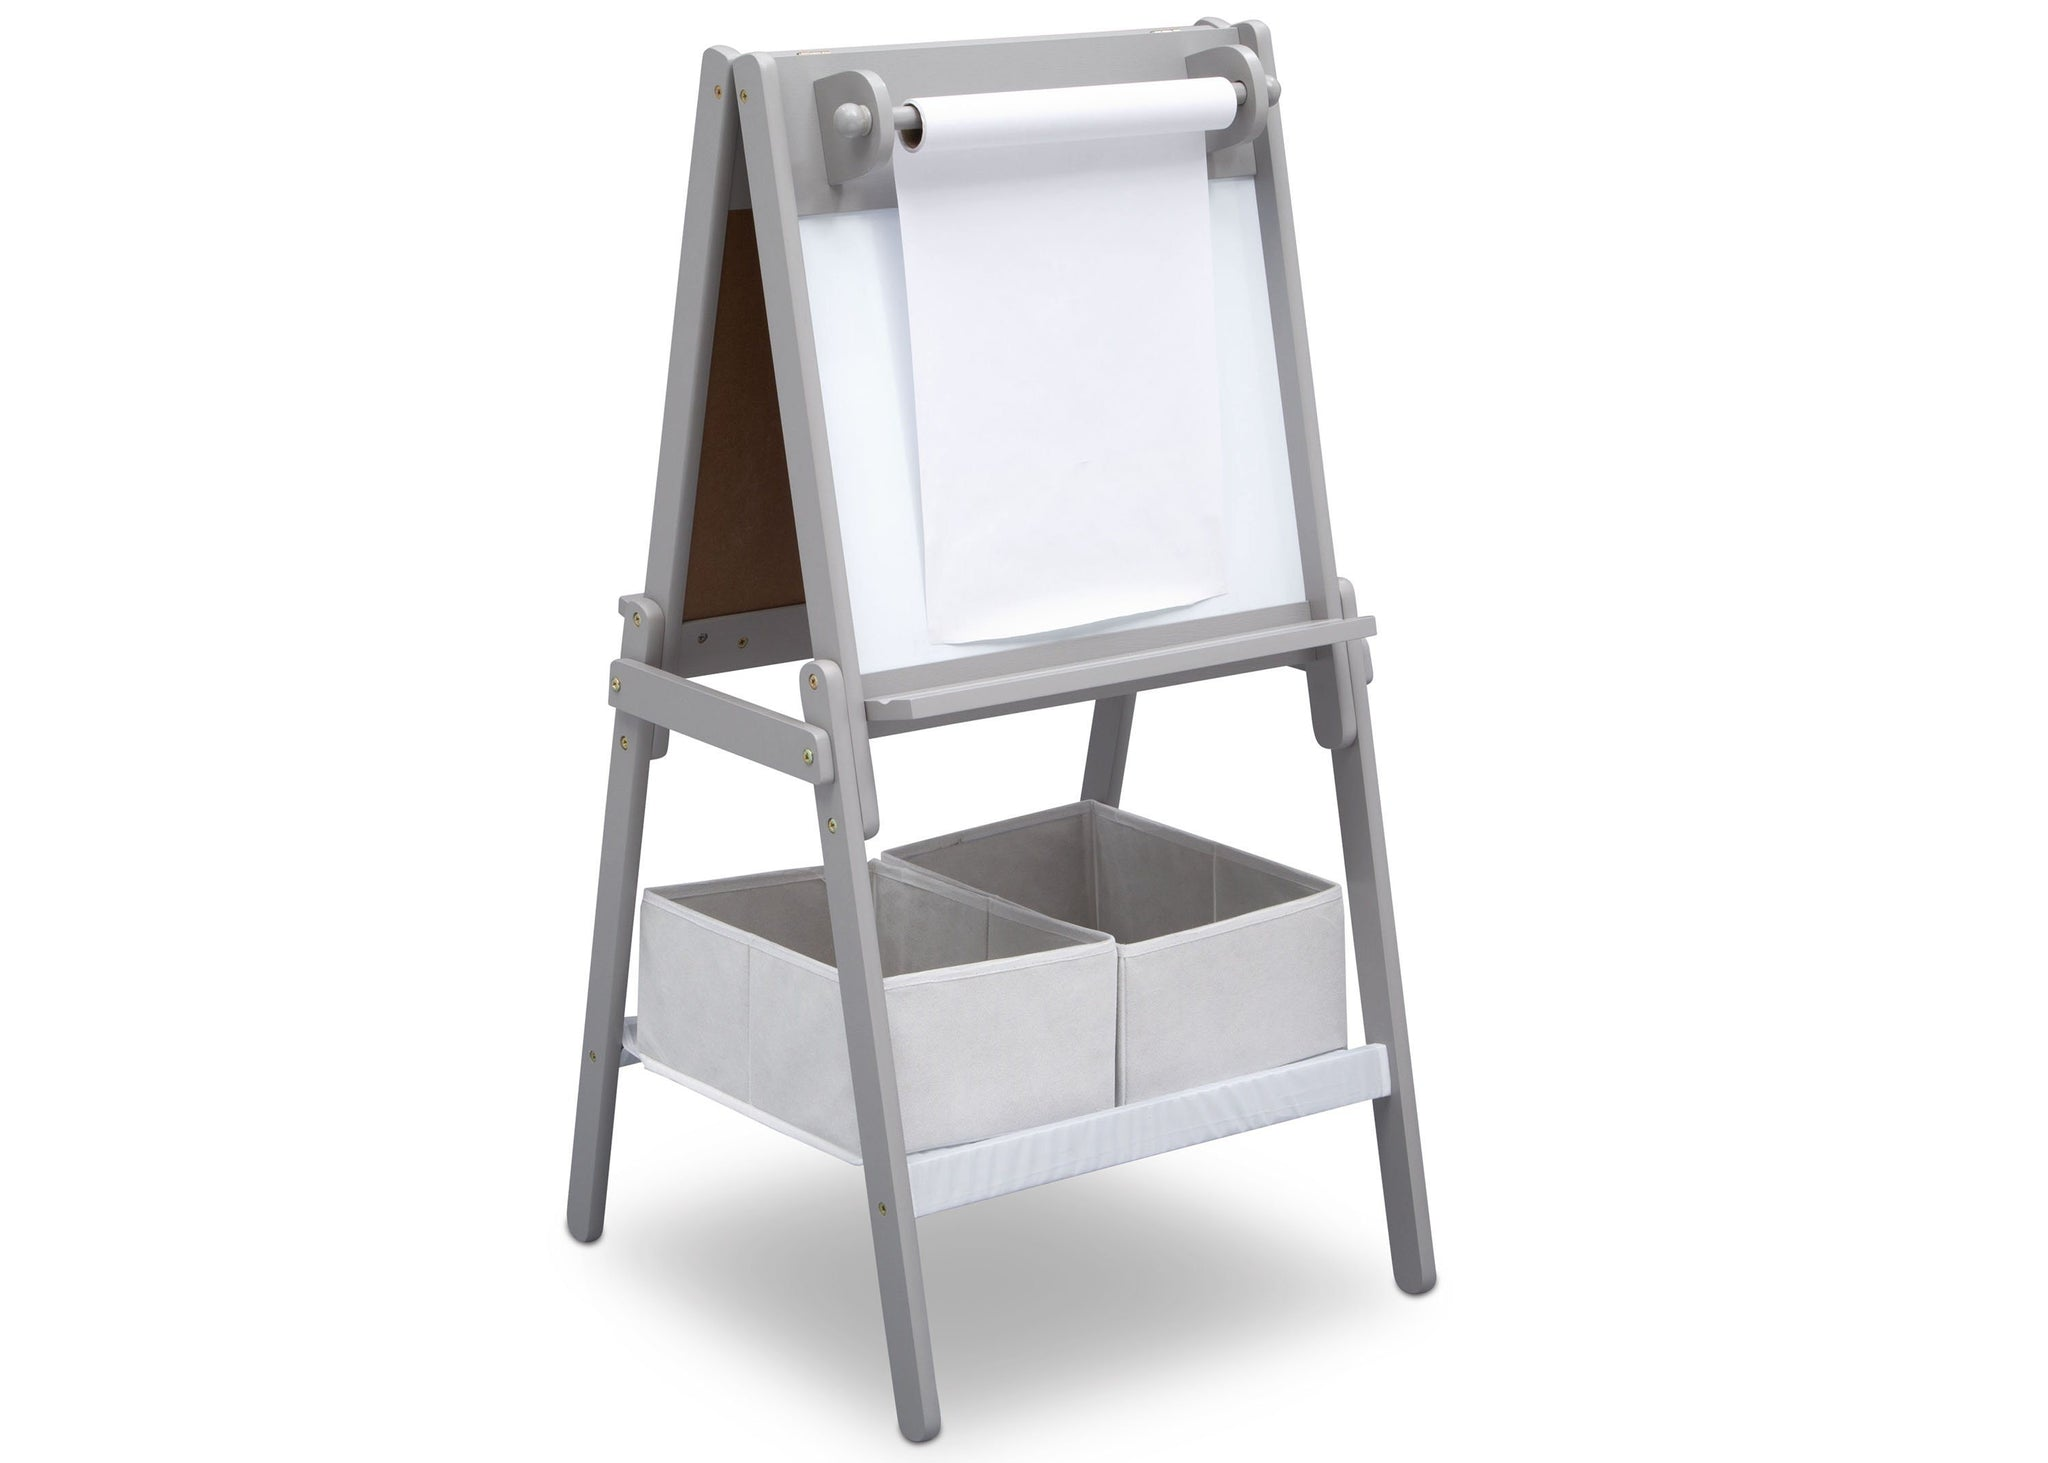 Delta Children Grey (026) MySize Double-Sided Storage Easel, Right Angle, a2a